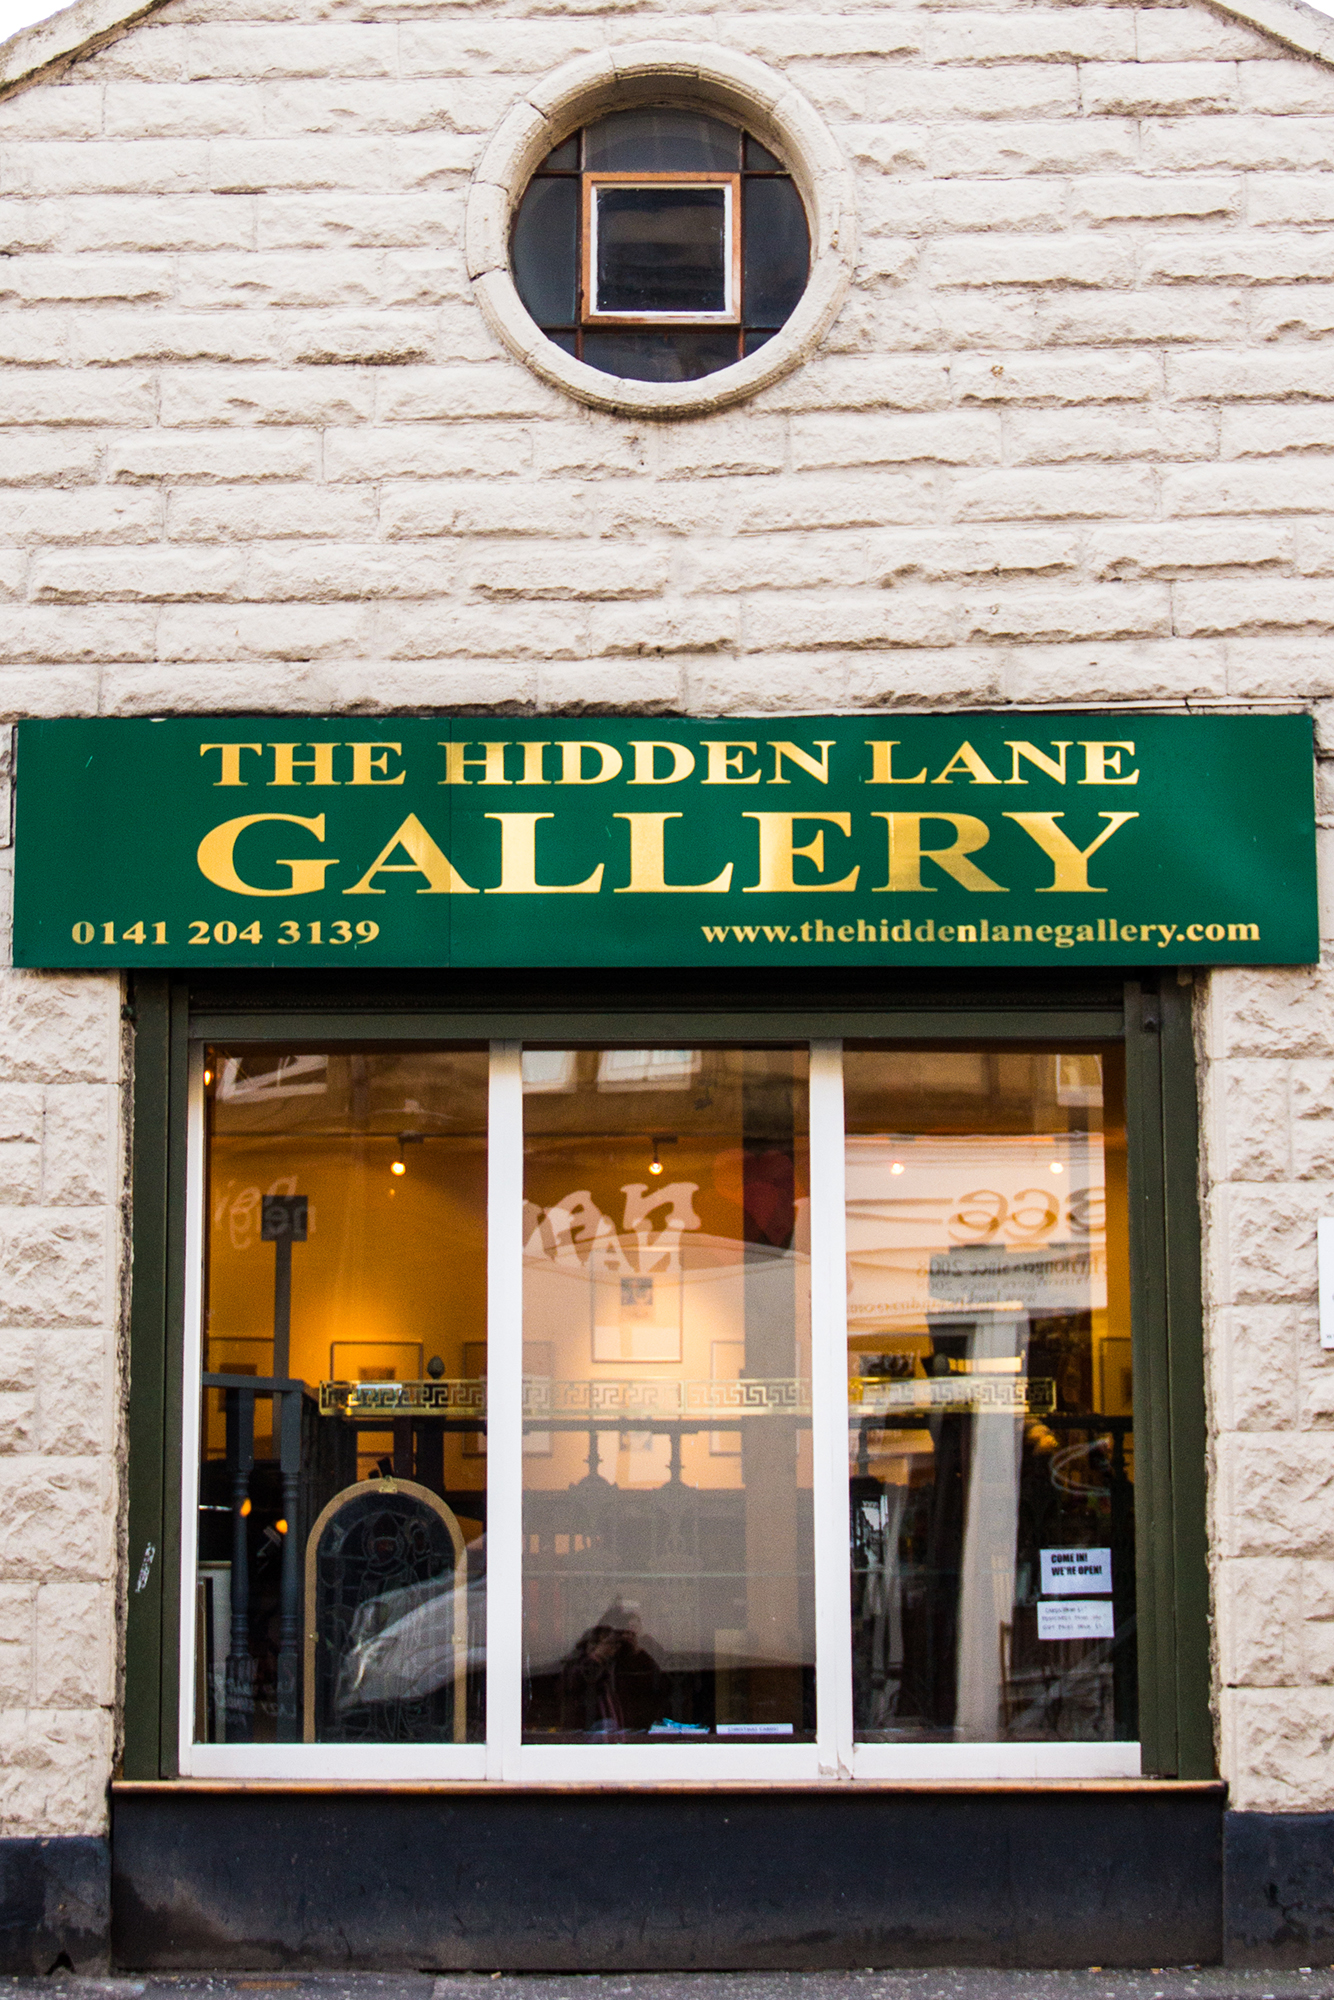 The Hidden Lane Gallery